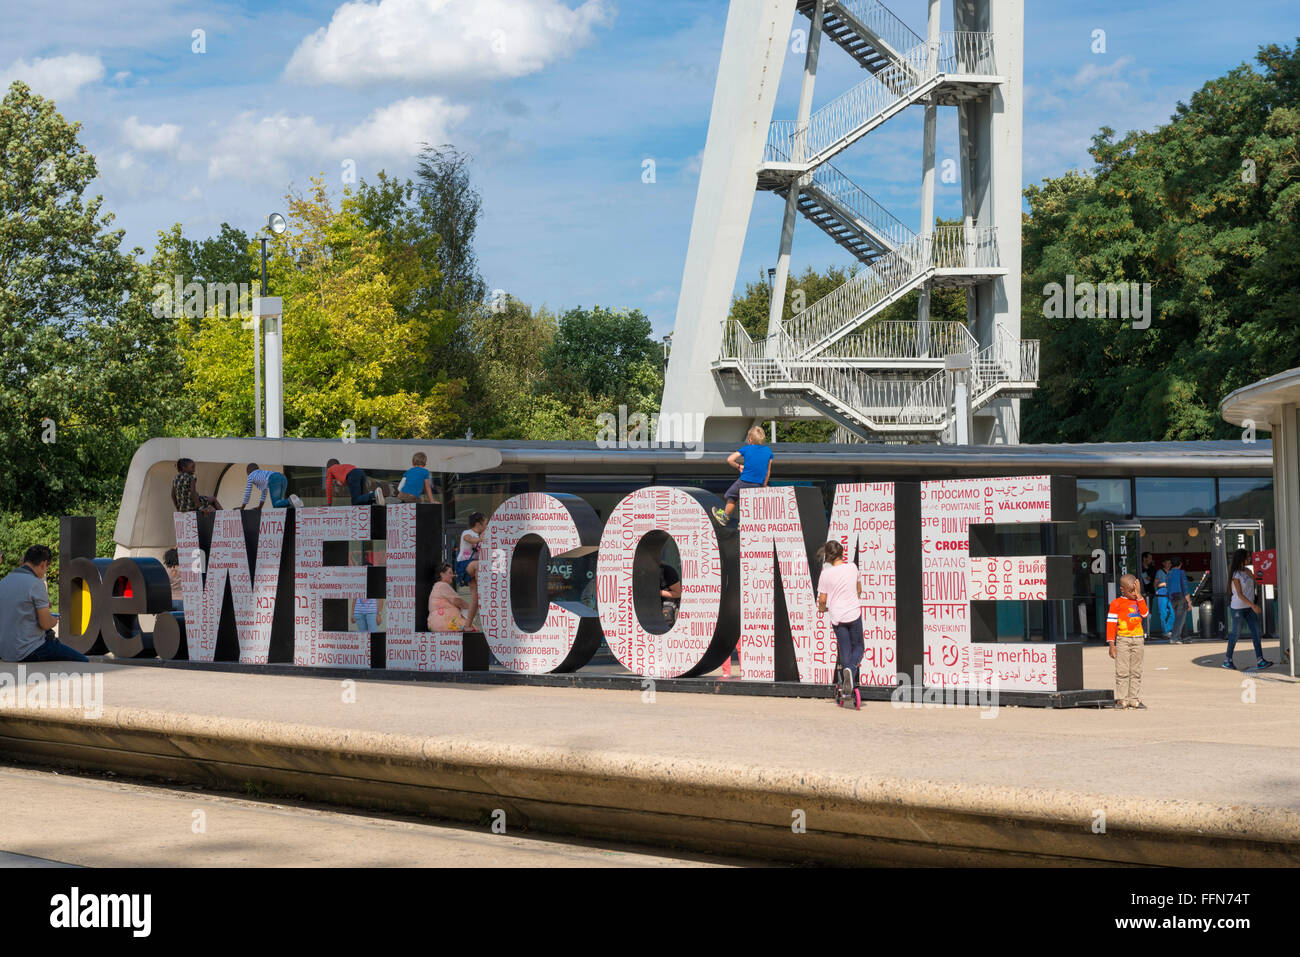 Welcome sign at the Atomium, Brussels, Belgium, Europe - Stock Image